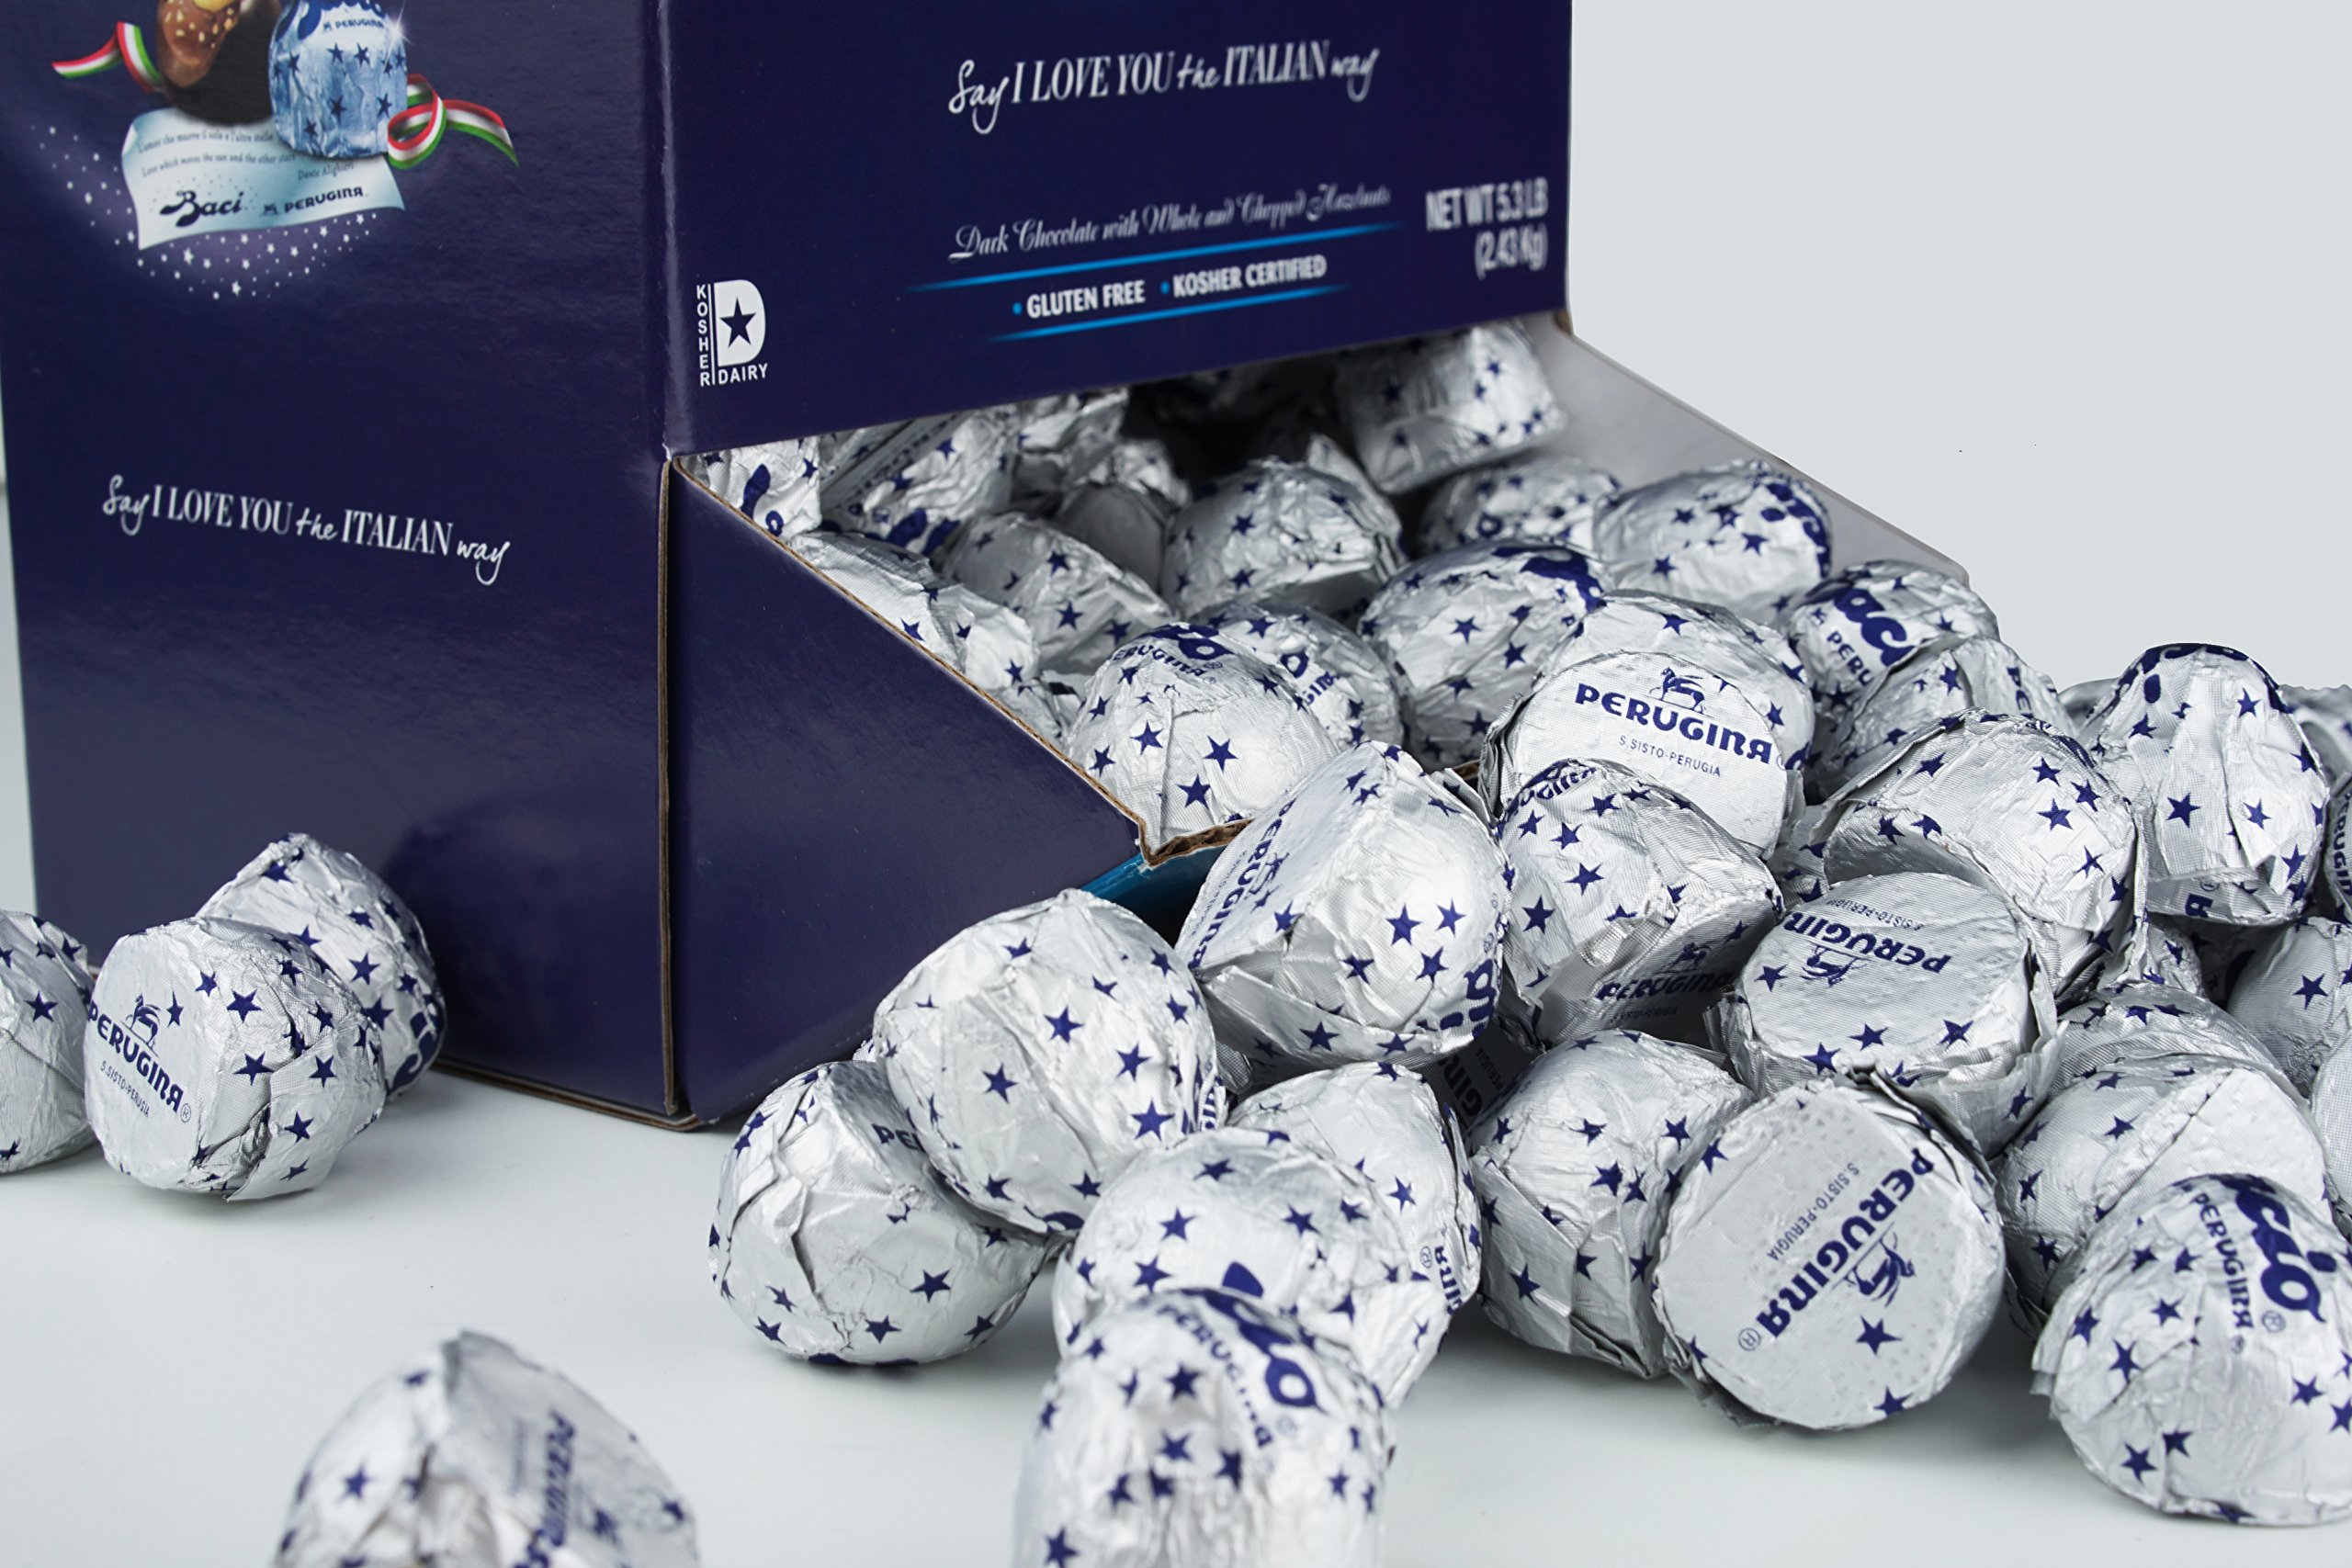 Perugina Baci Classic Dark Display Box, Dark Chocolate, 5.3 Pound by Perugina (Image #6)